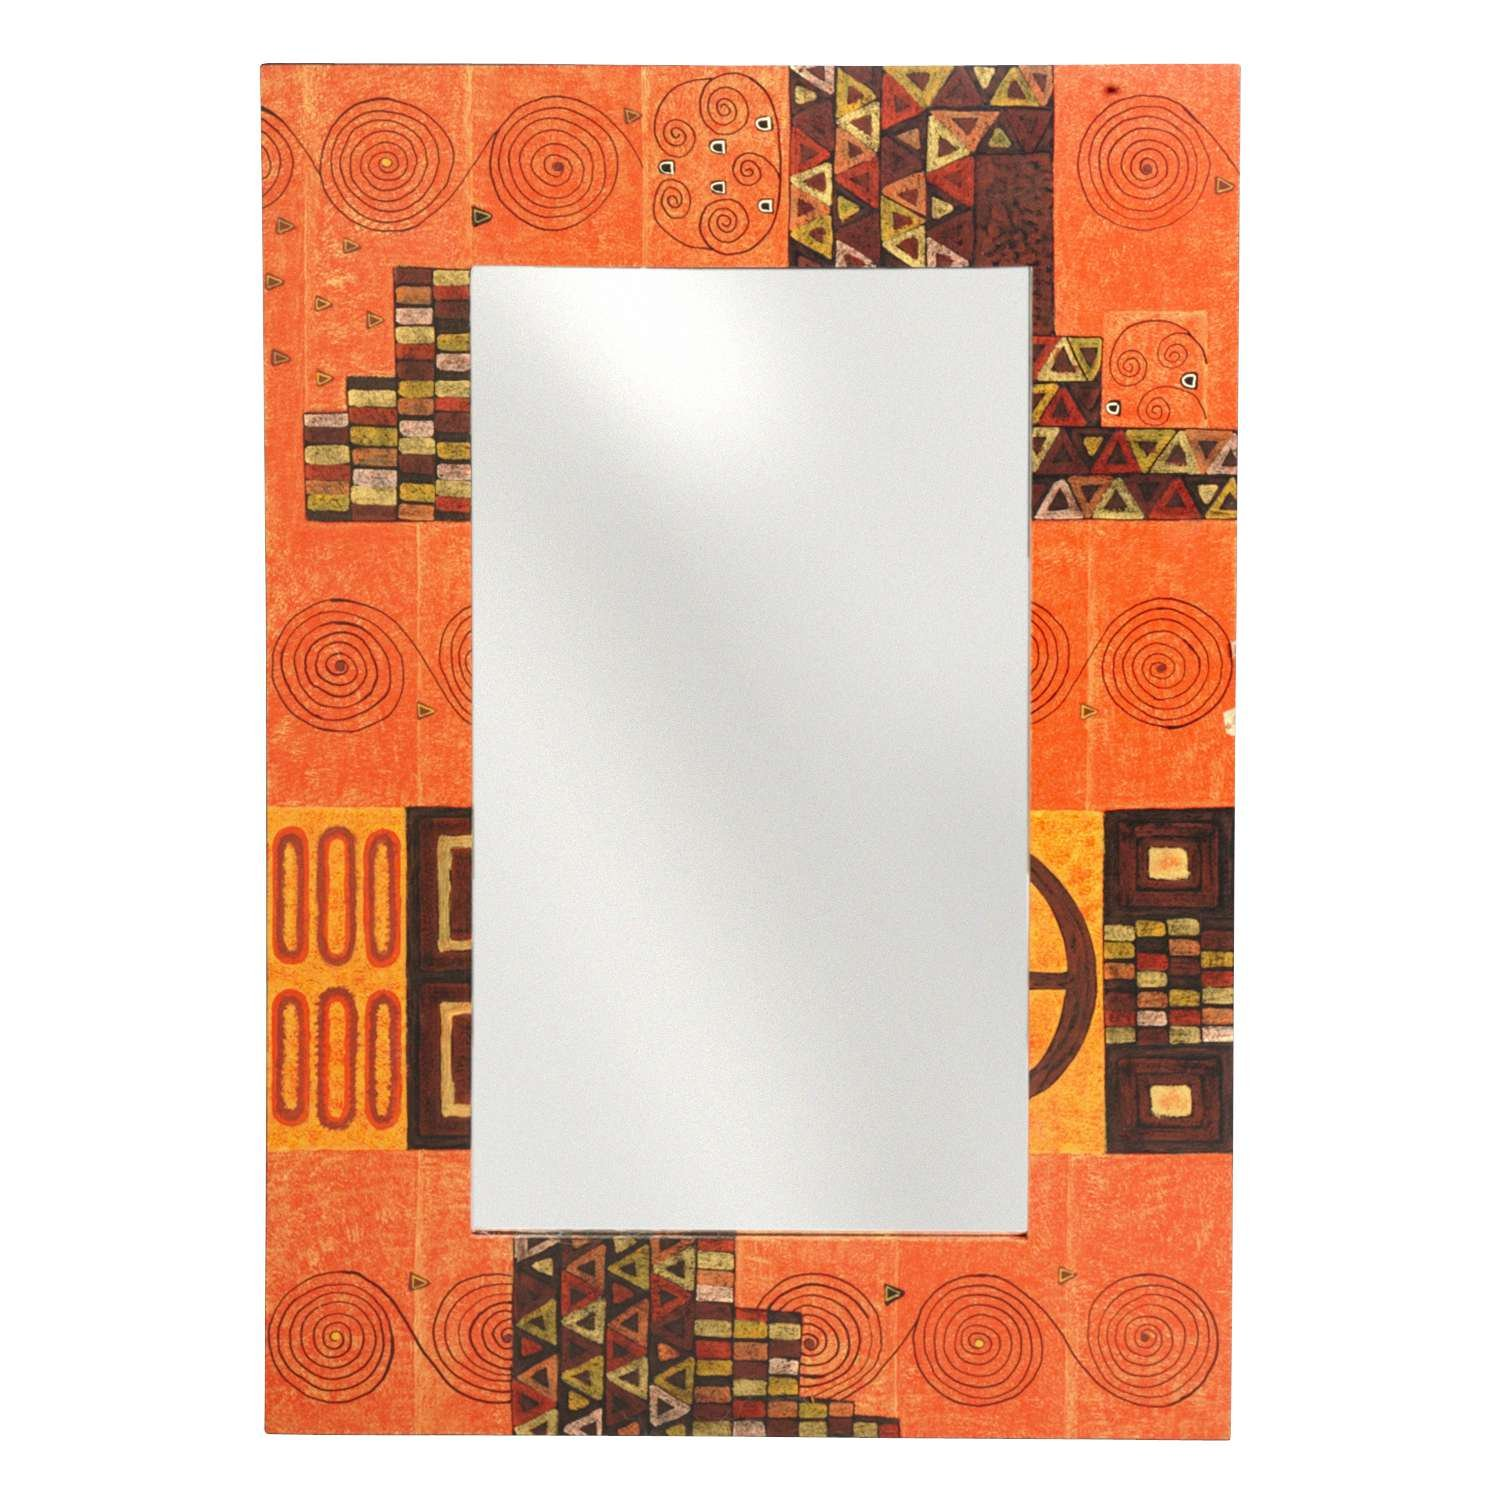 Hand Painted Geometric Design Mirror 30''x21'' 'Lumina Mirror' by Ten Thousand Villages